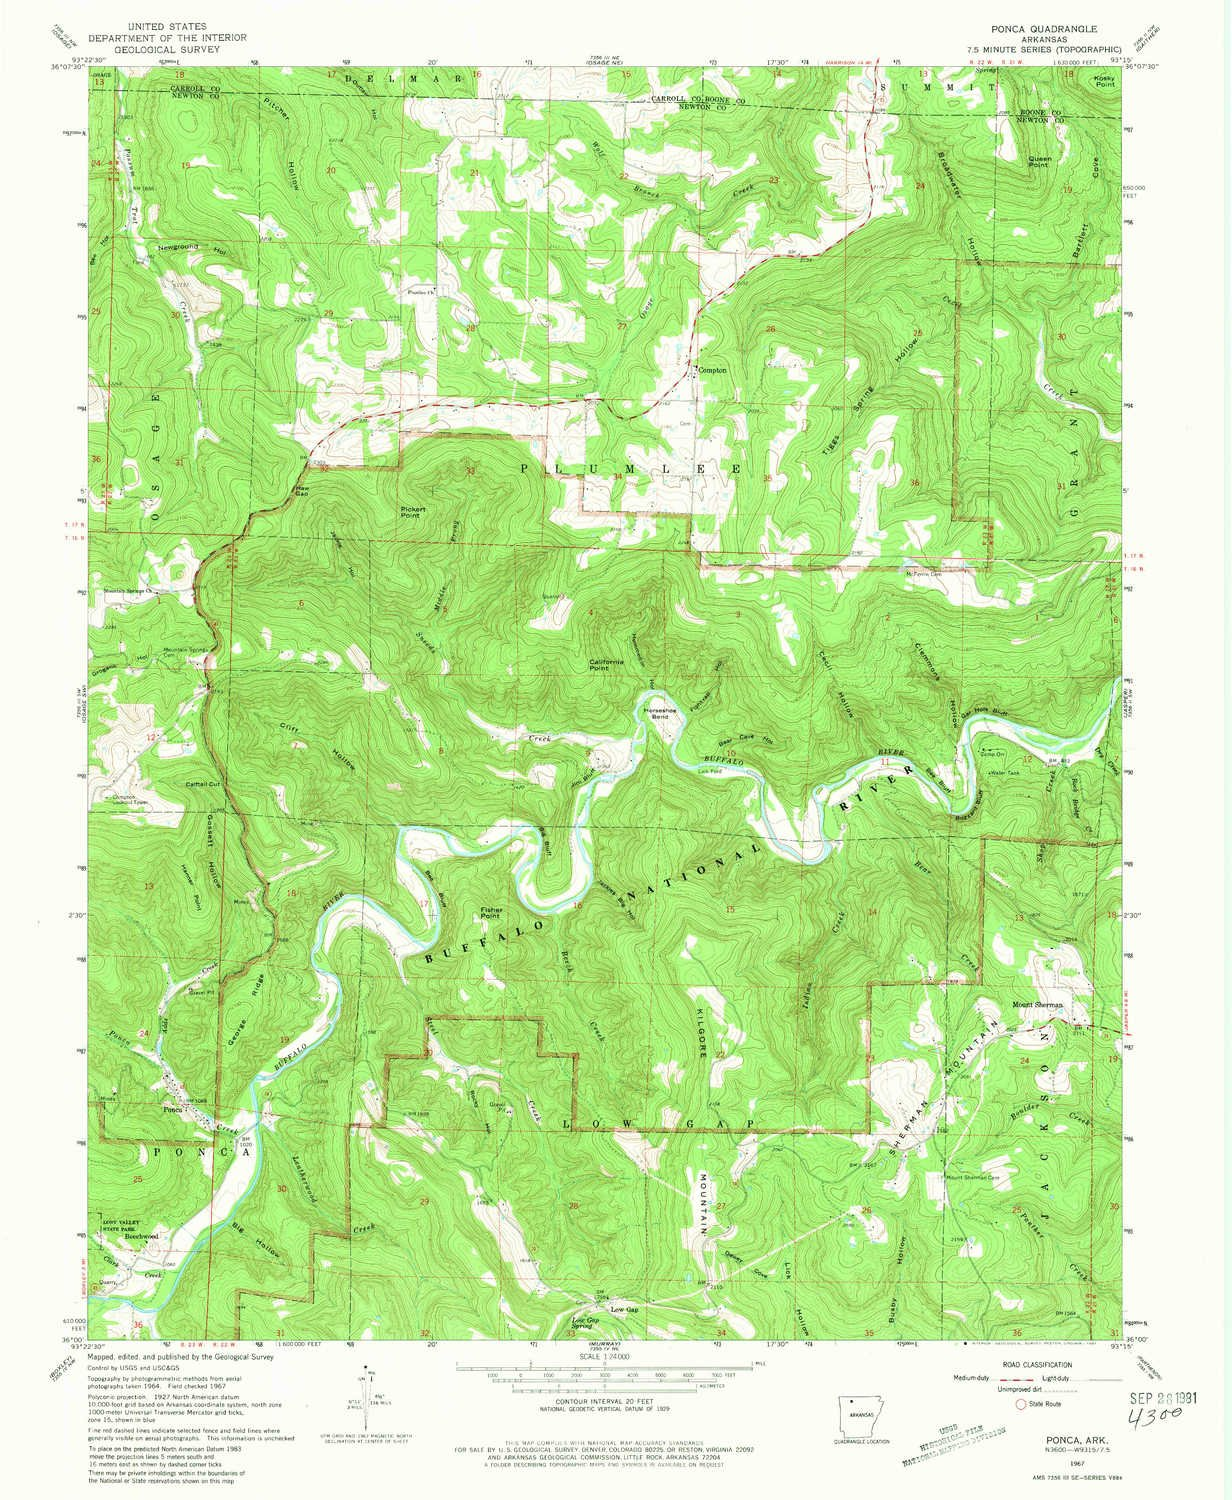 Ponca Arkansas Map.Amazon Com Yellowmaps Ponca Ar Topo Map 1 24000 Scale 7 5 X 7 5